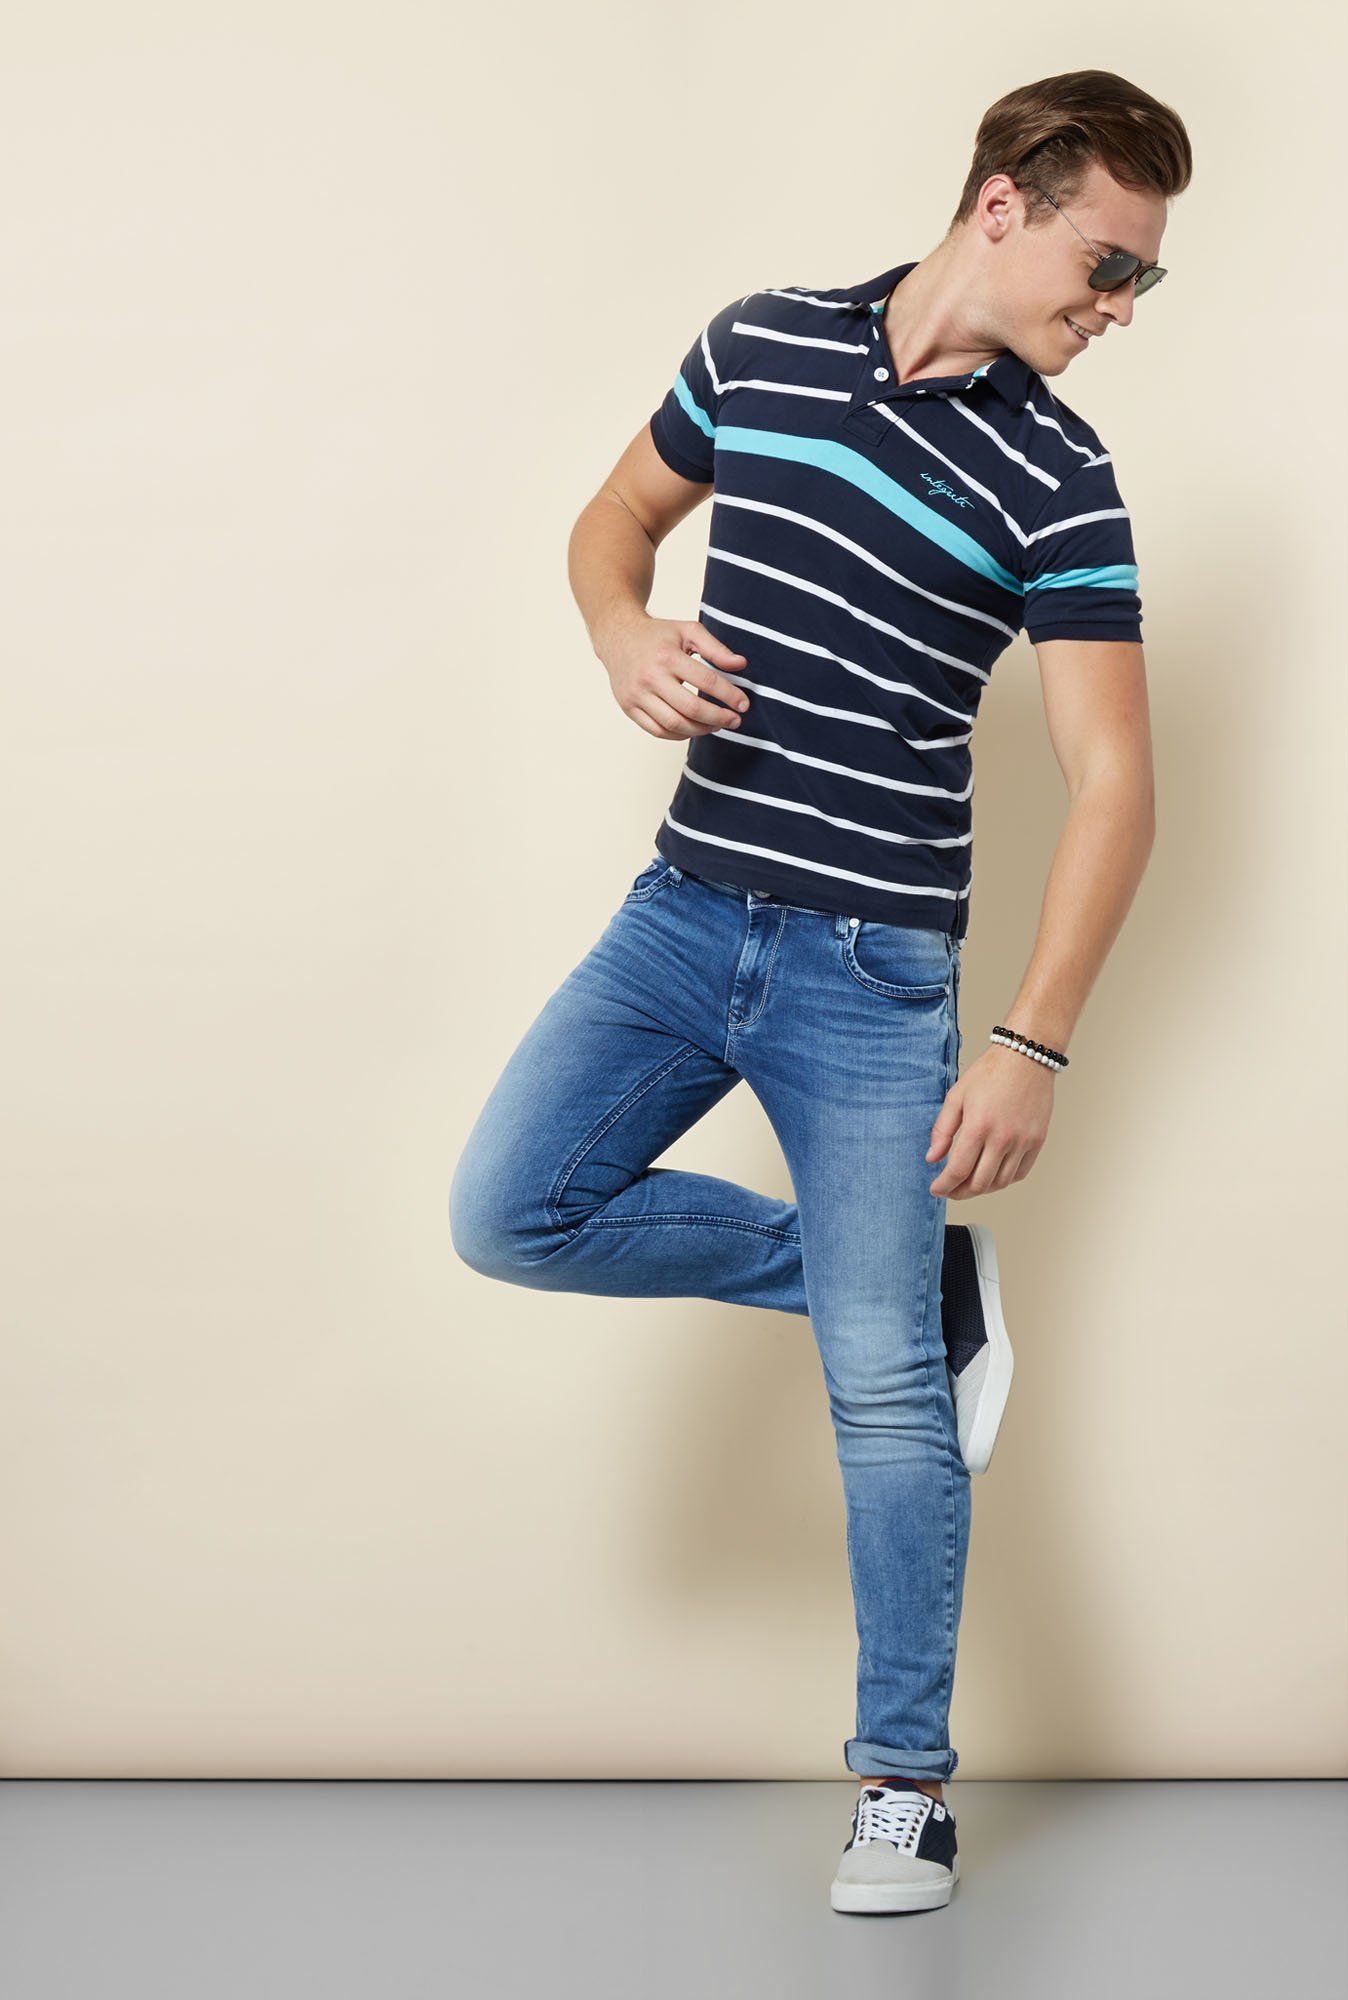 Integriti Navy Striped Polo T Shirt